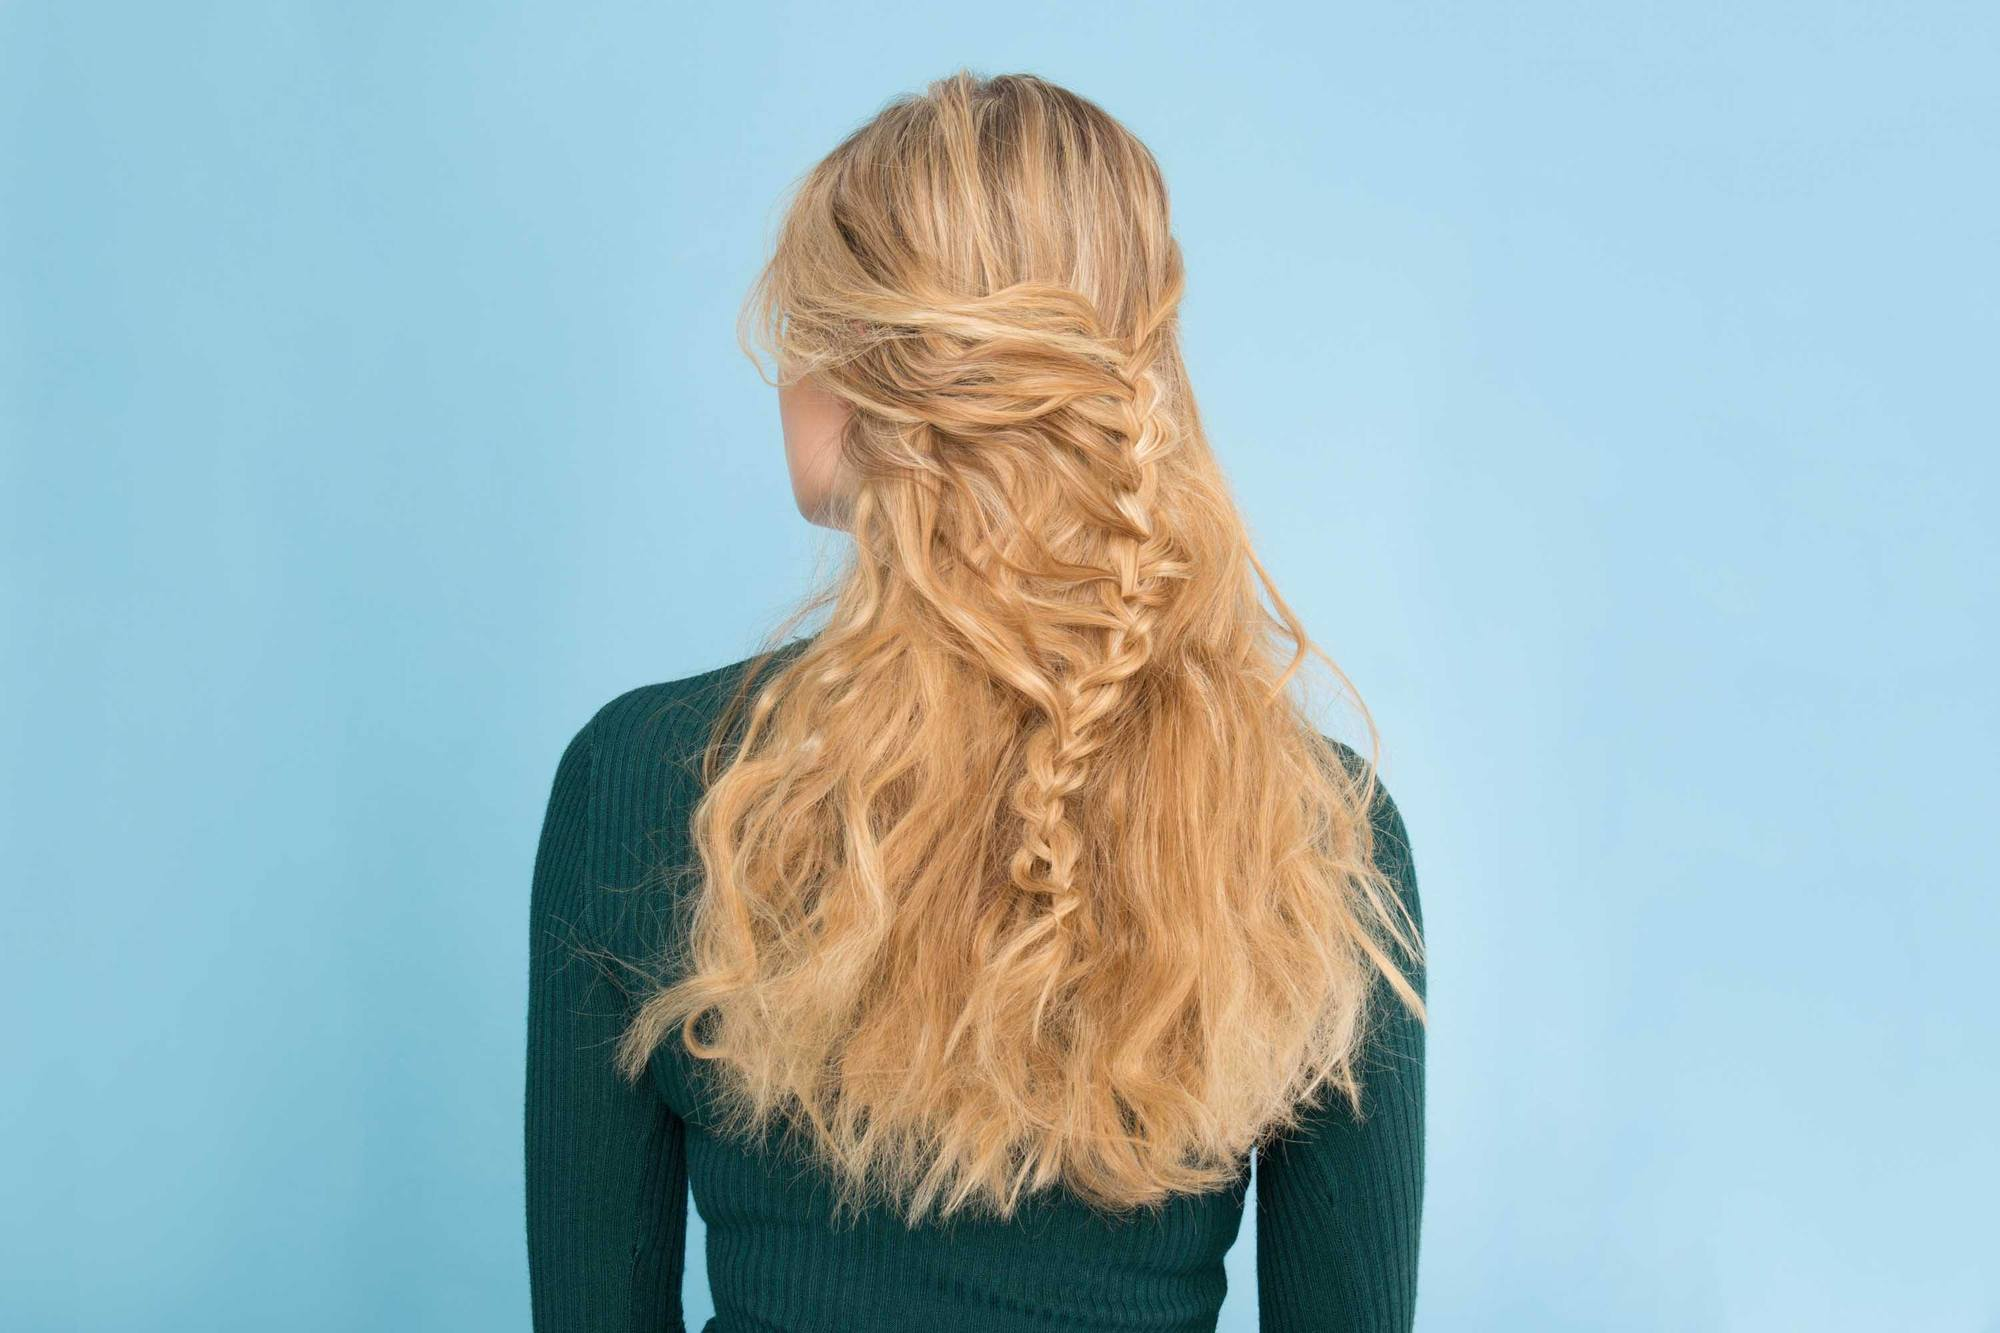 Blonde woman with natural waves wearing braided style